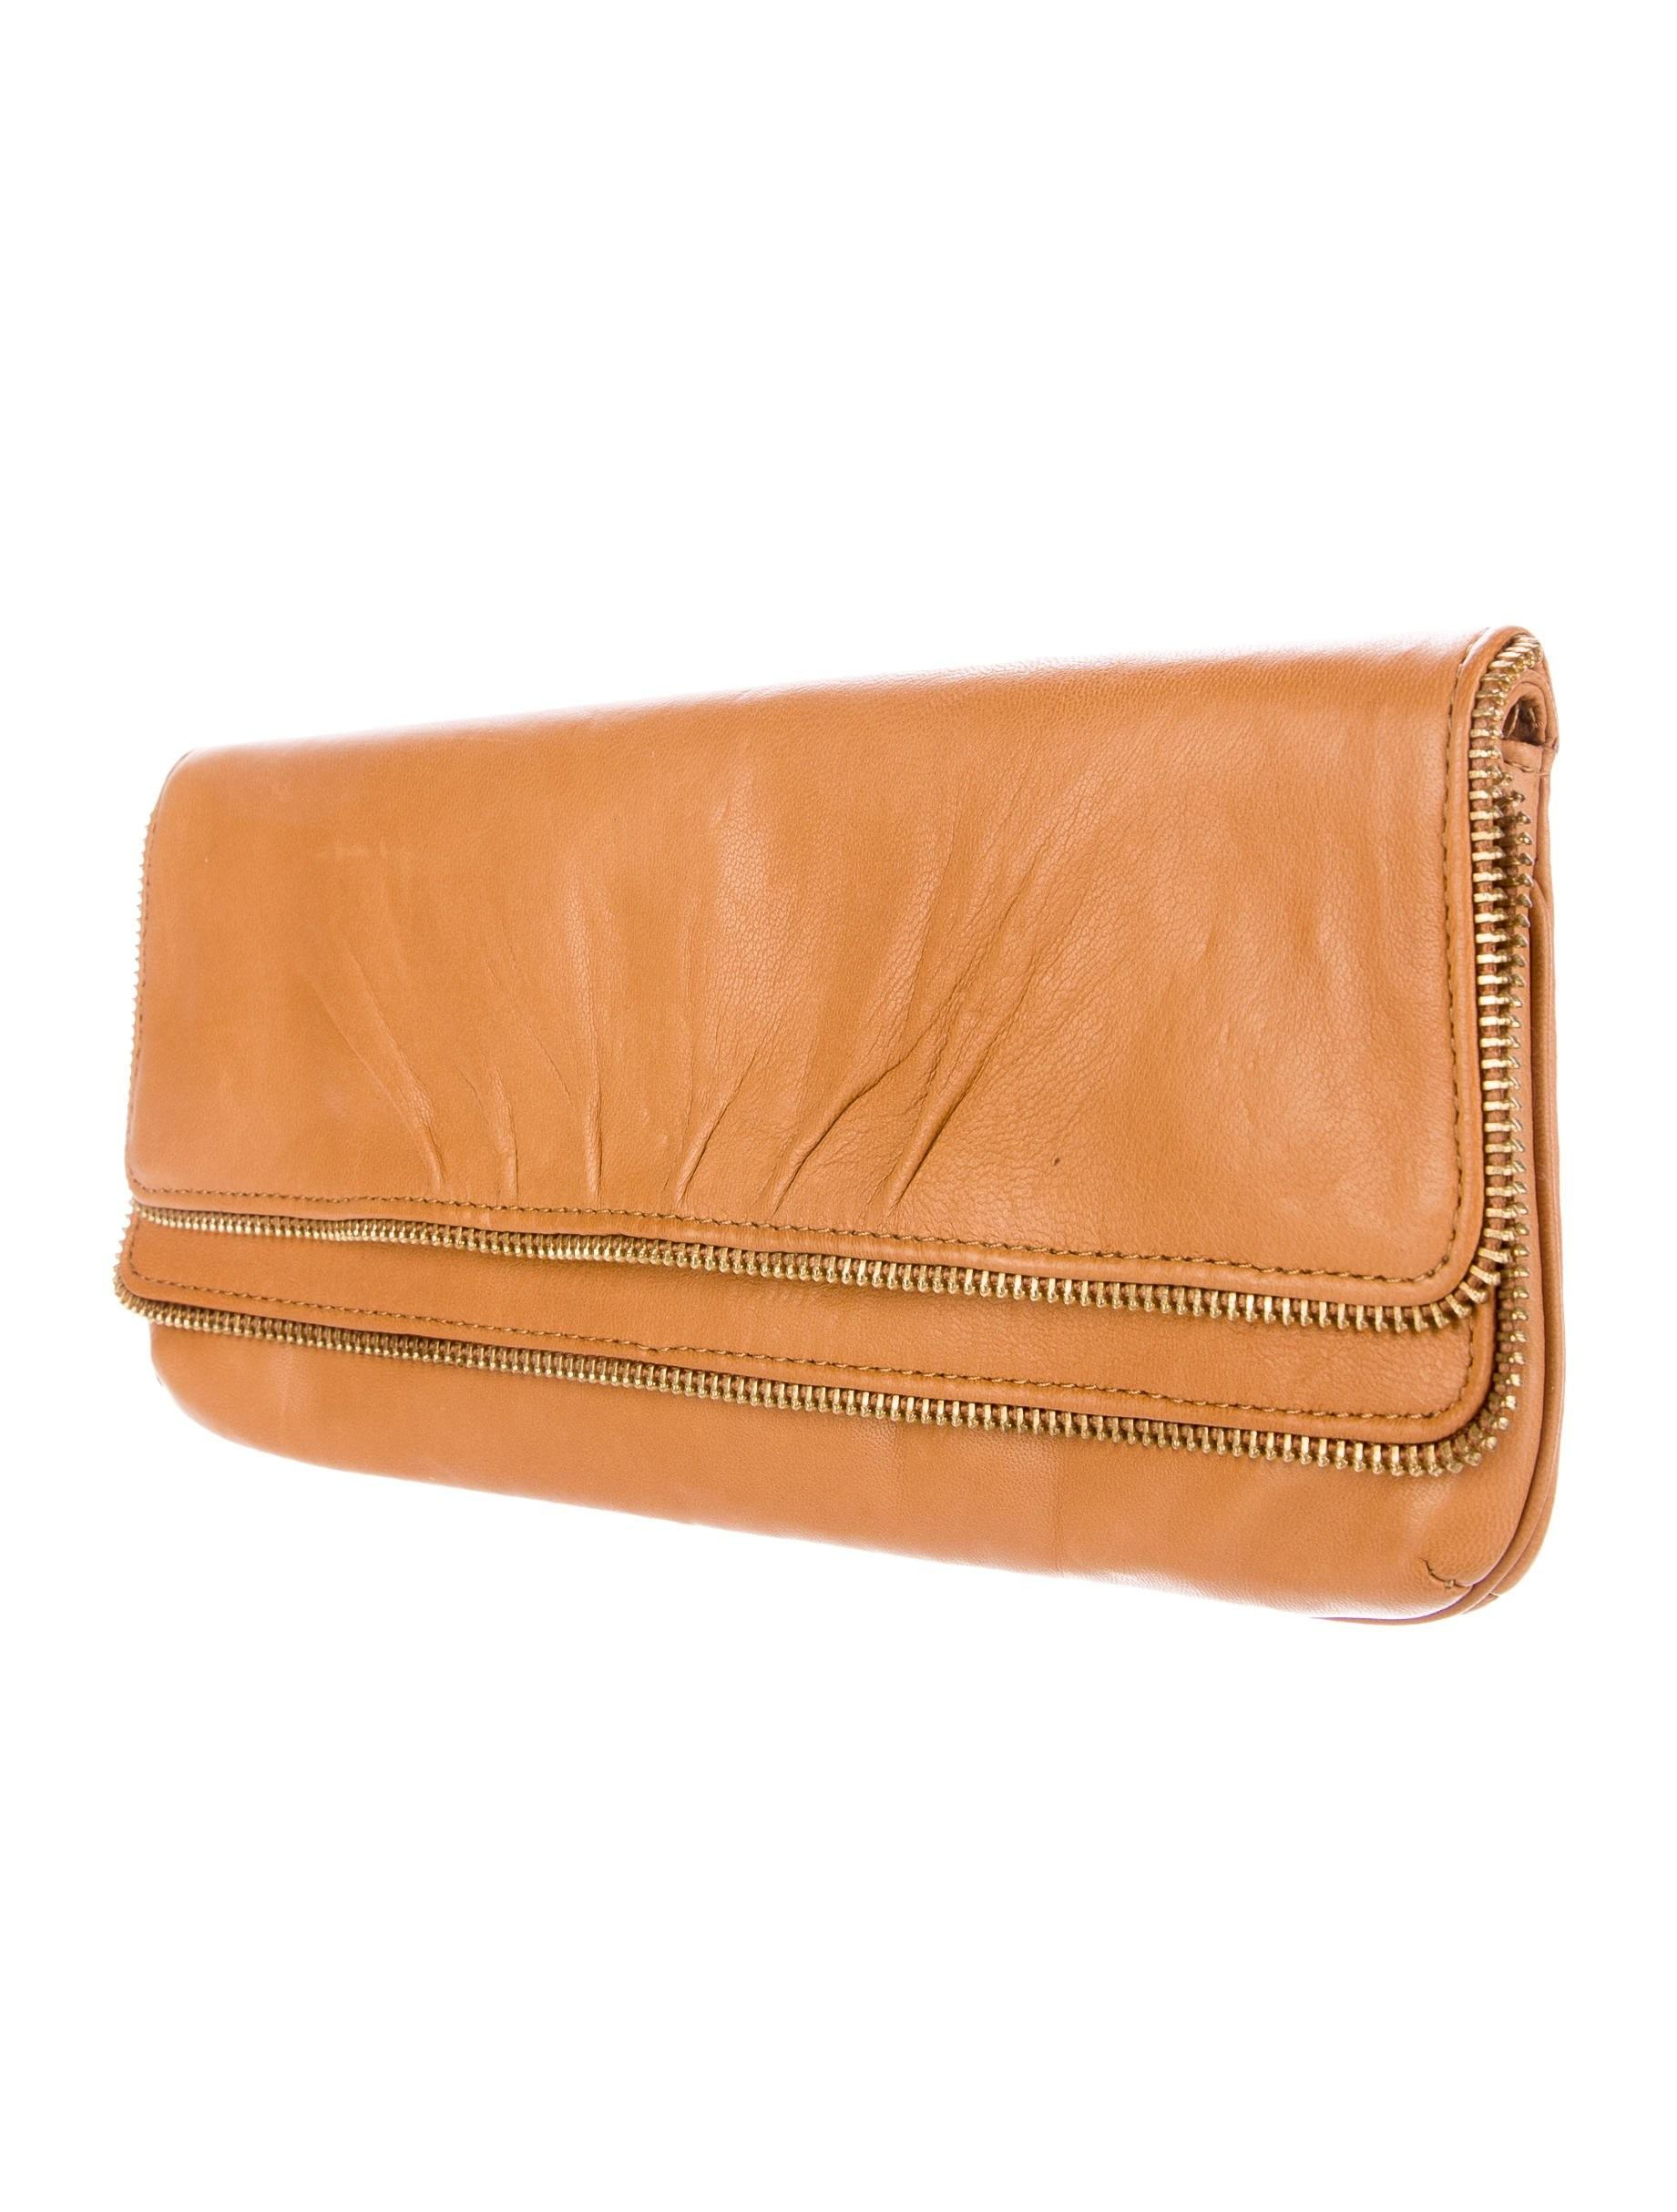 Lauren Merkin Leather Flap Clutch Handbags Wl